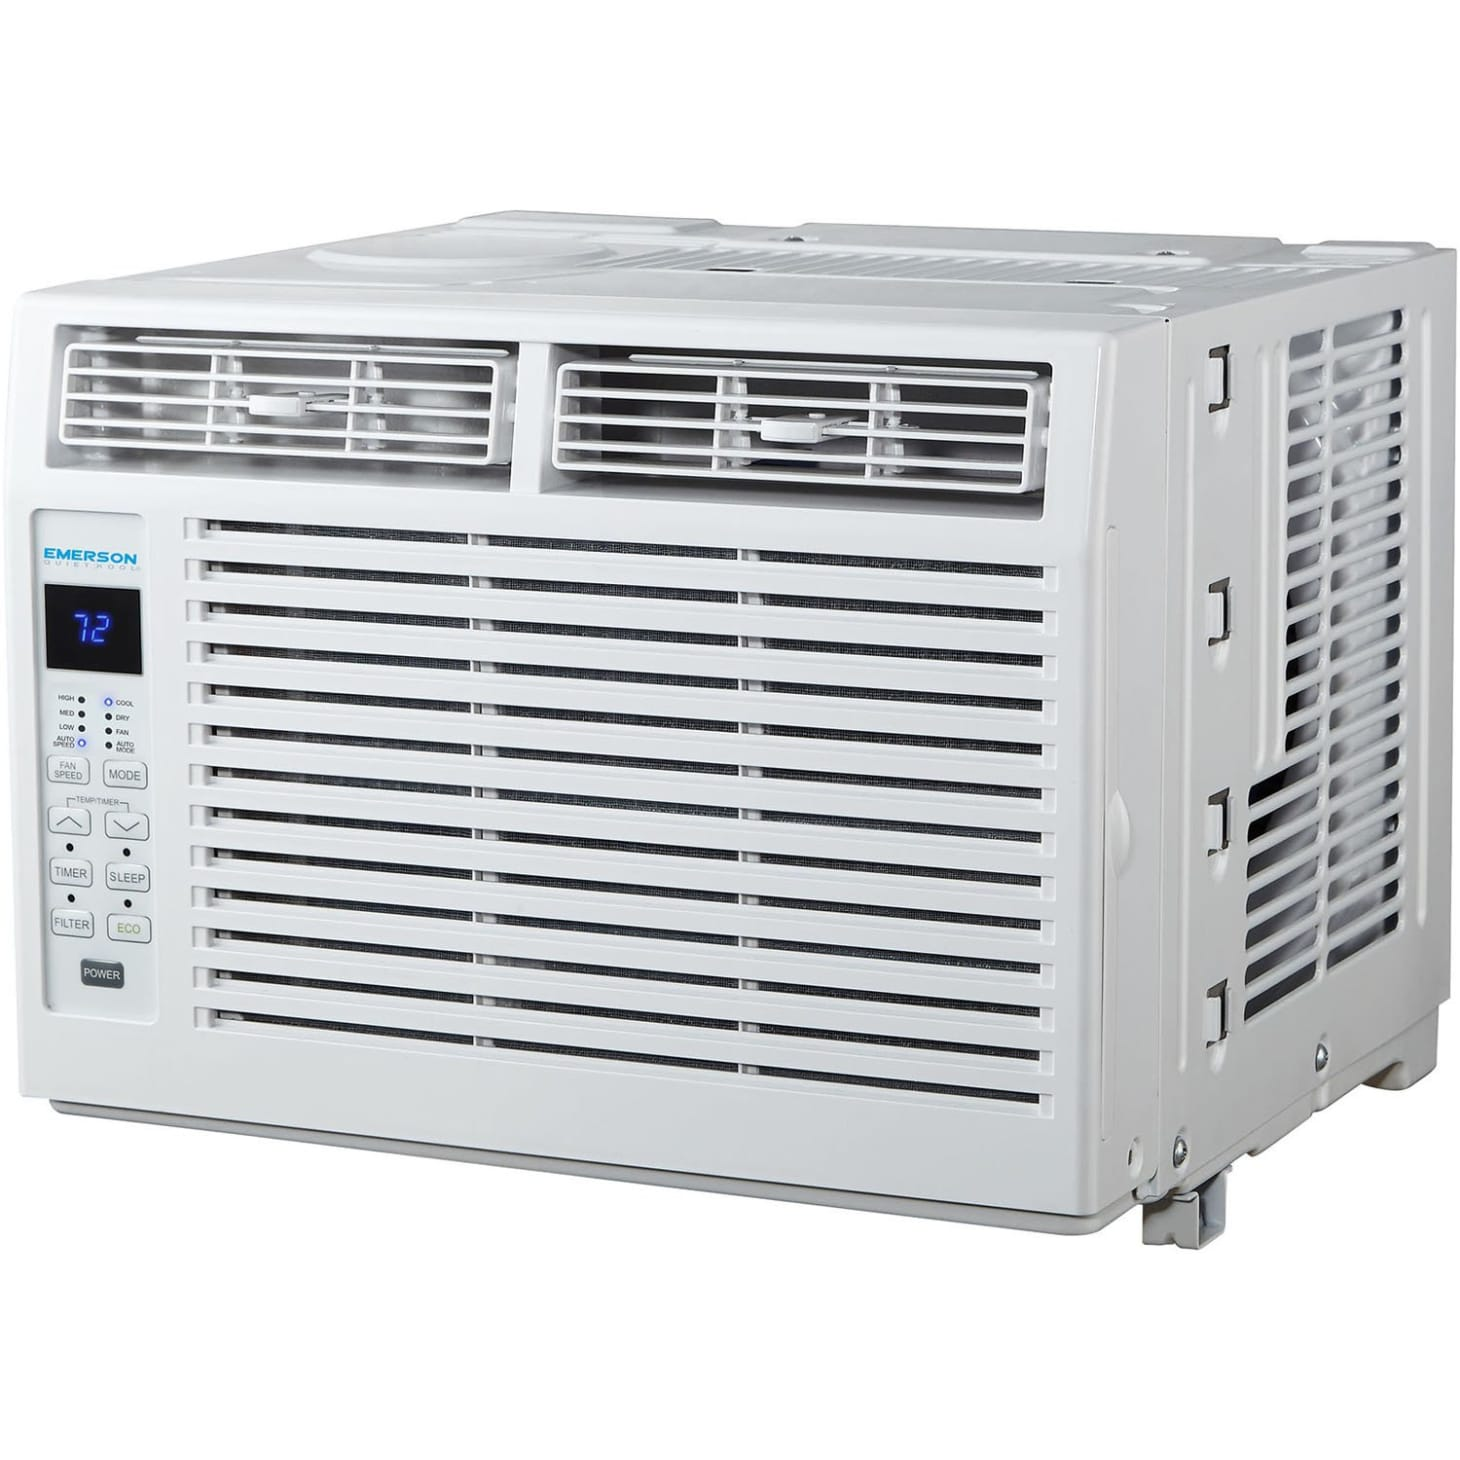 The Best Window Ac Units To Keep Your Home Air Conditioned